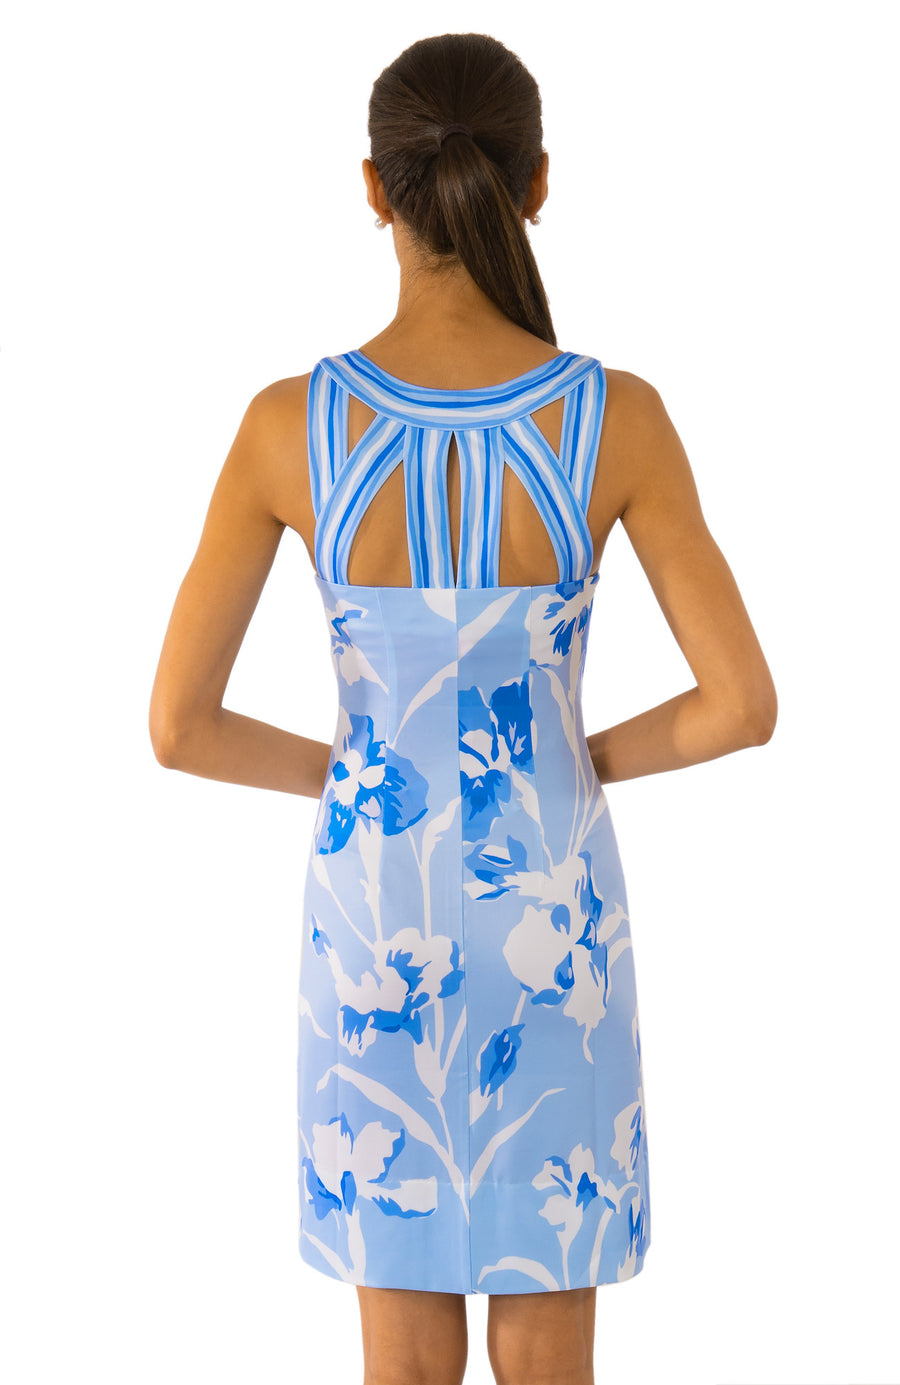 Isoceles Dress-Iconic Blues Gretchen Scott